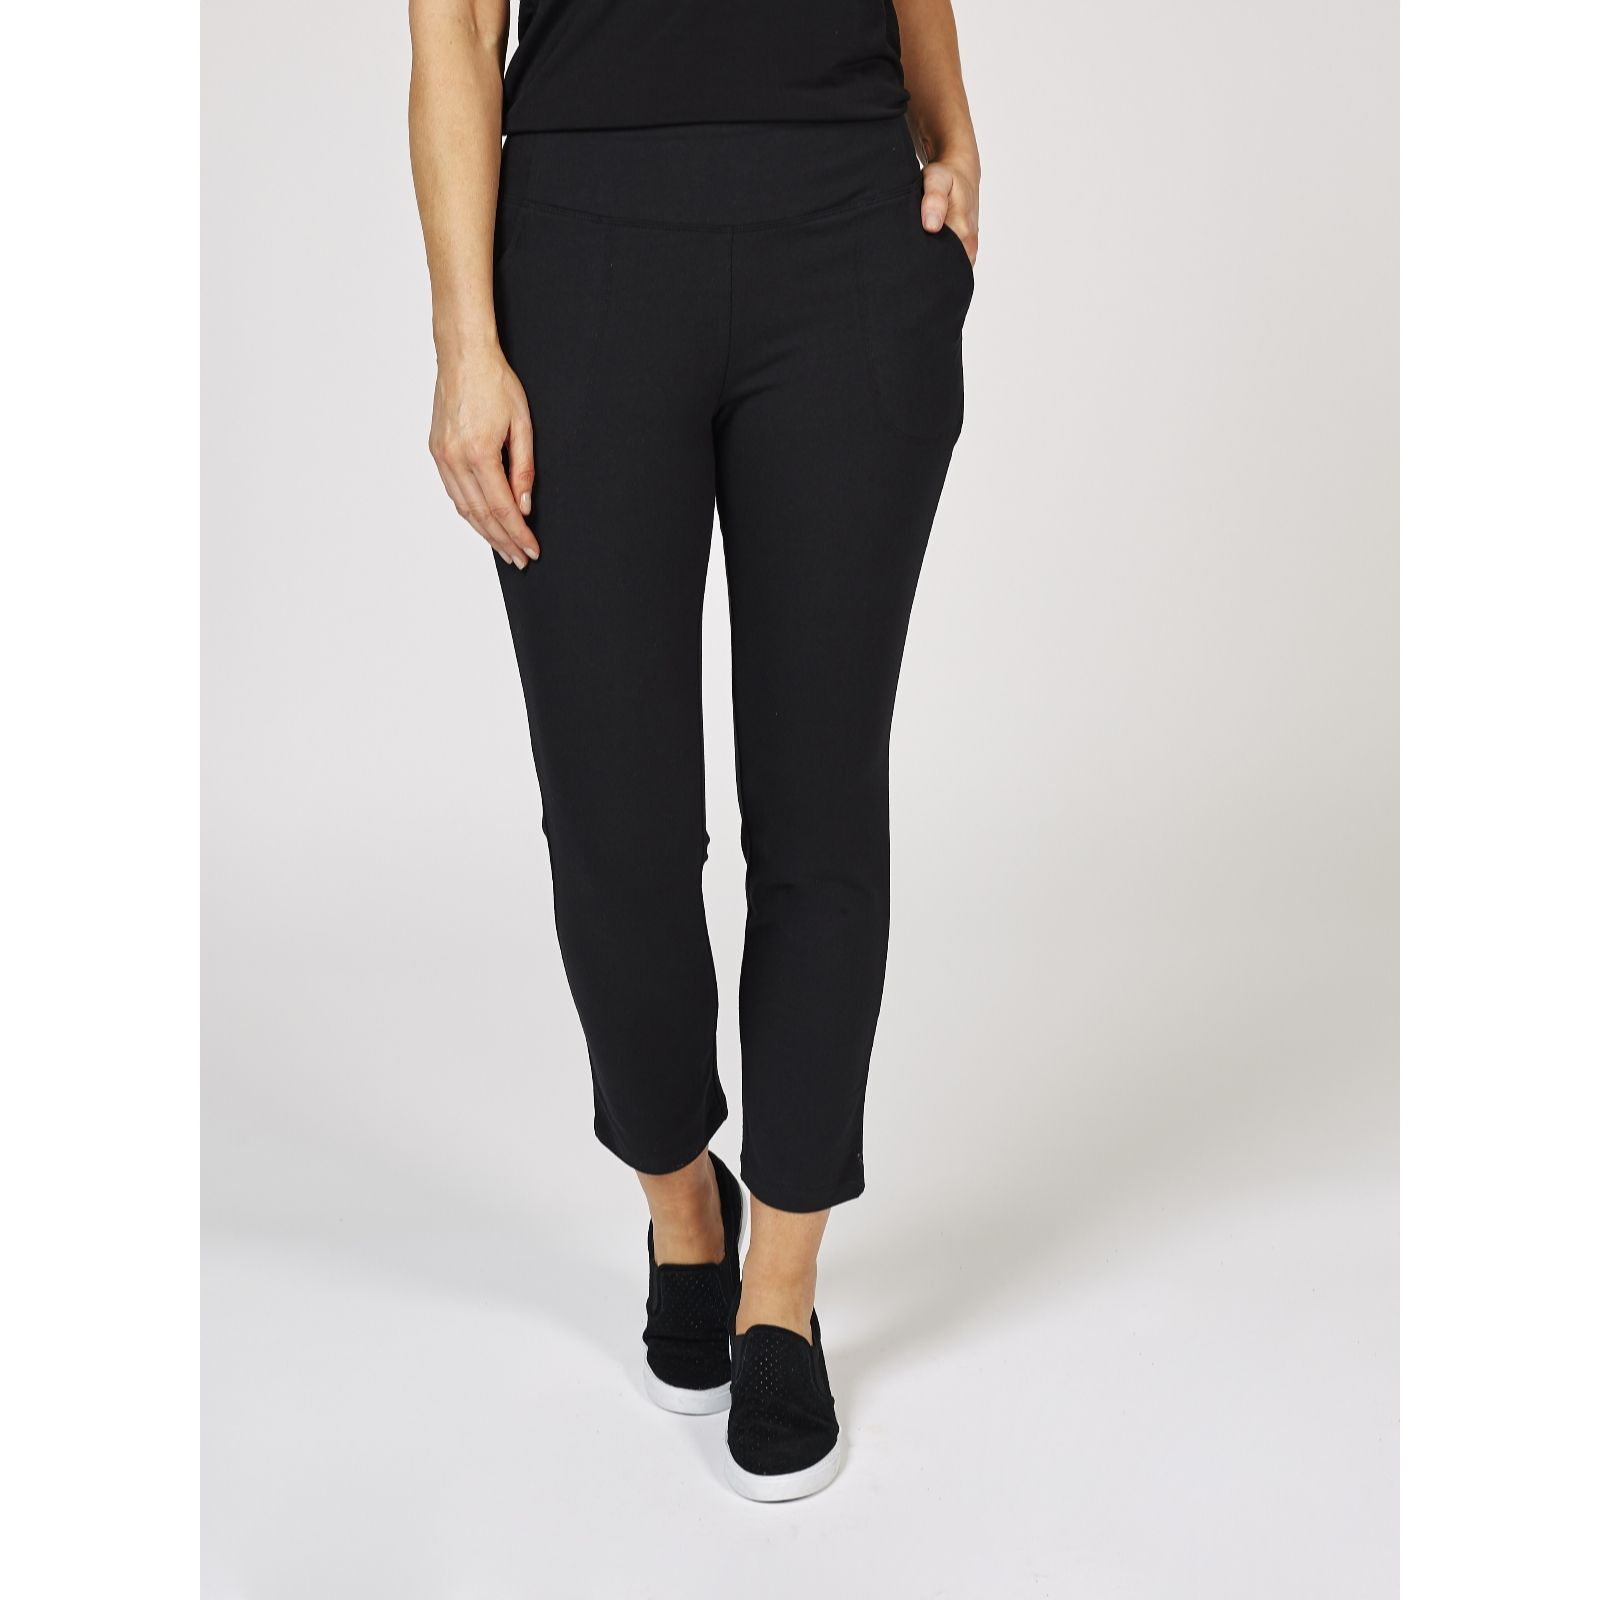 d76592fdf55f3 Women with Control Tummy Control Petite Pull On Trousers - QVC UK